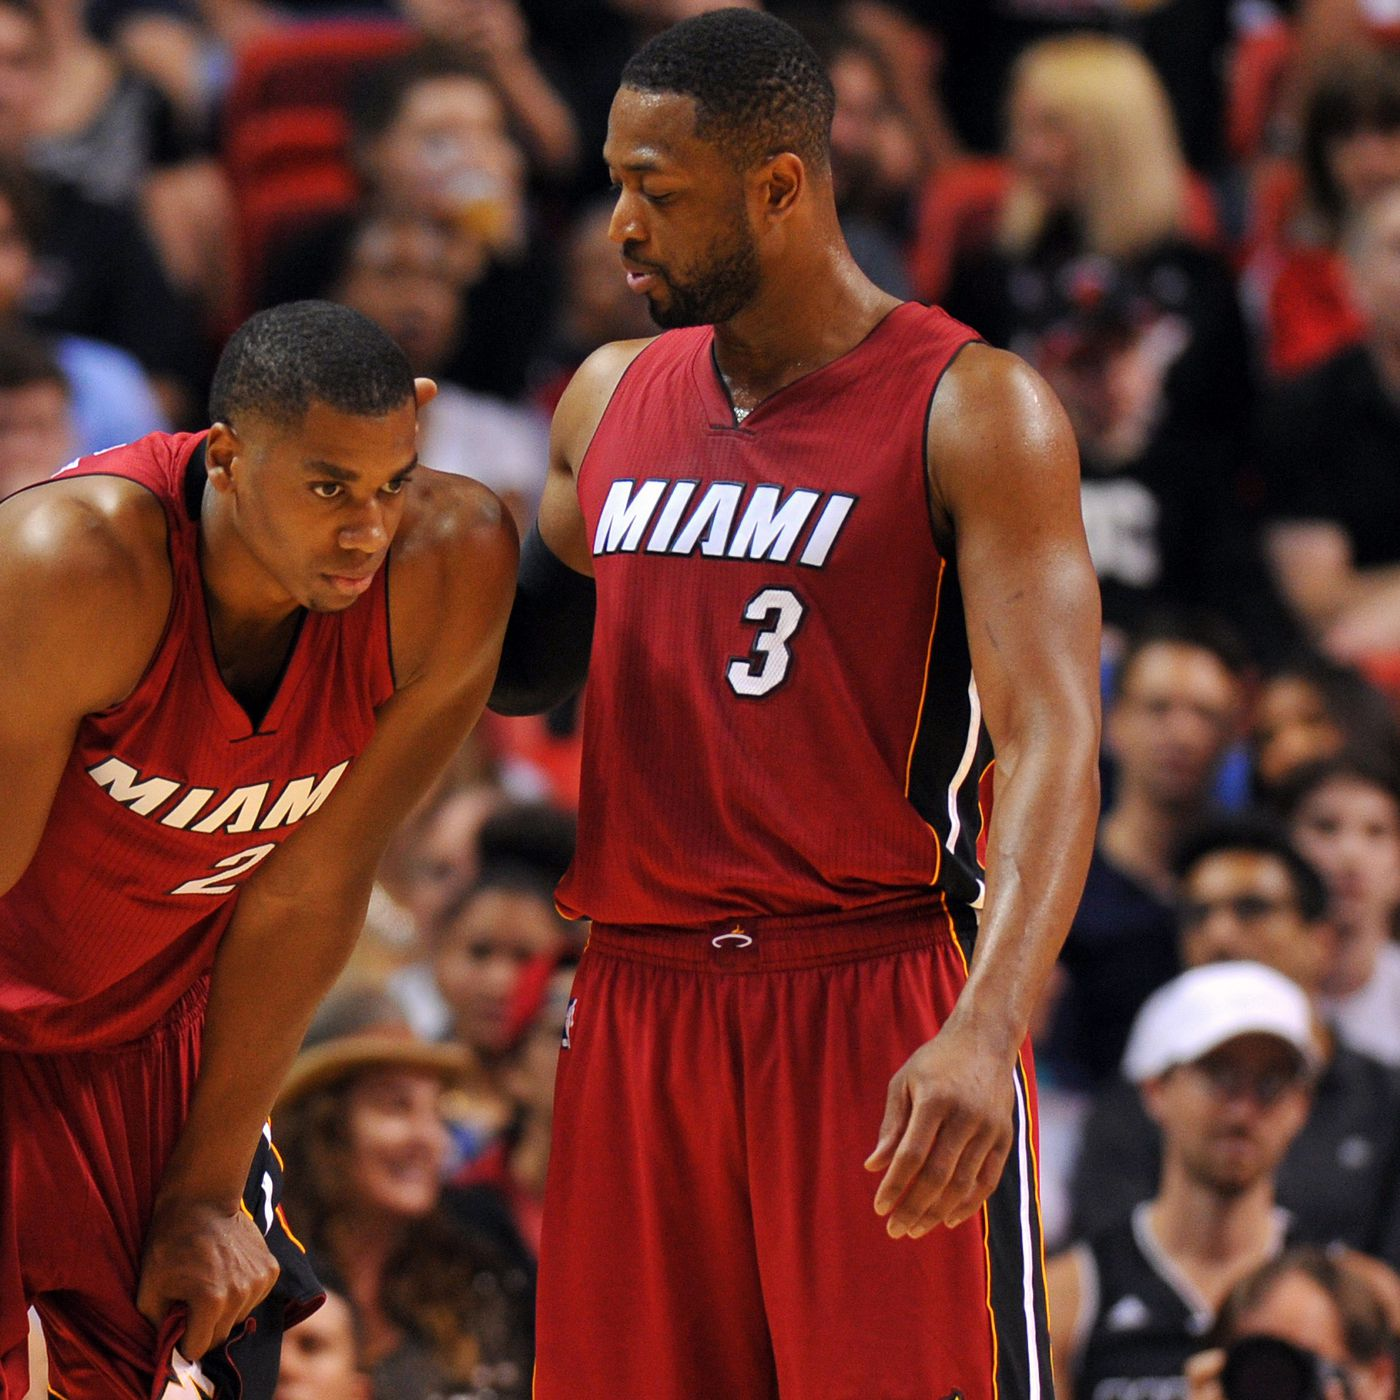 Can Pat Riley and Dwyane Wade's rich legacy in Miami sway